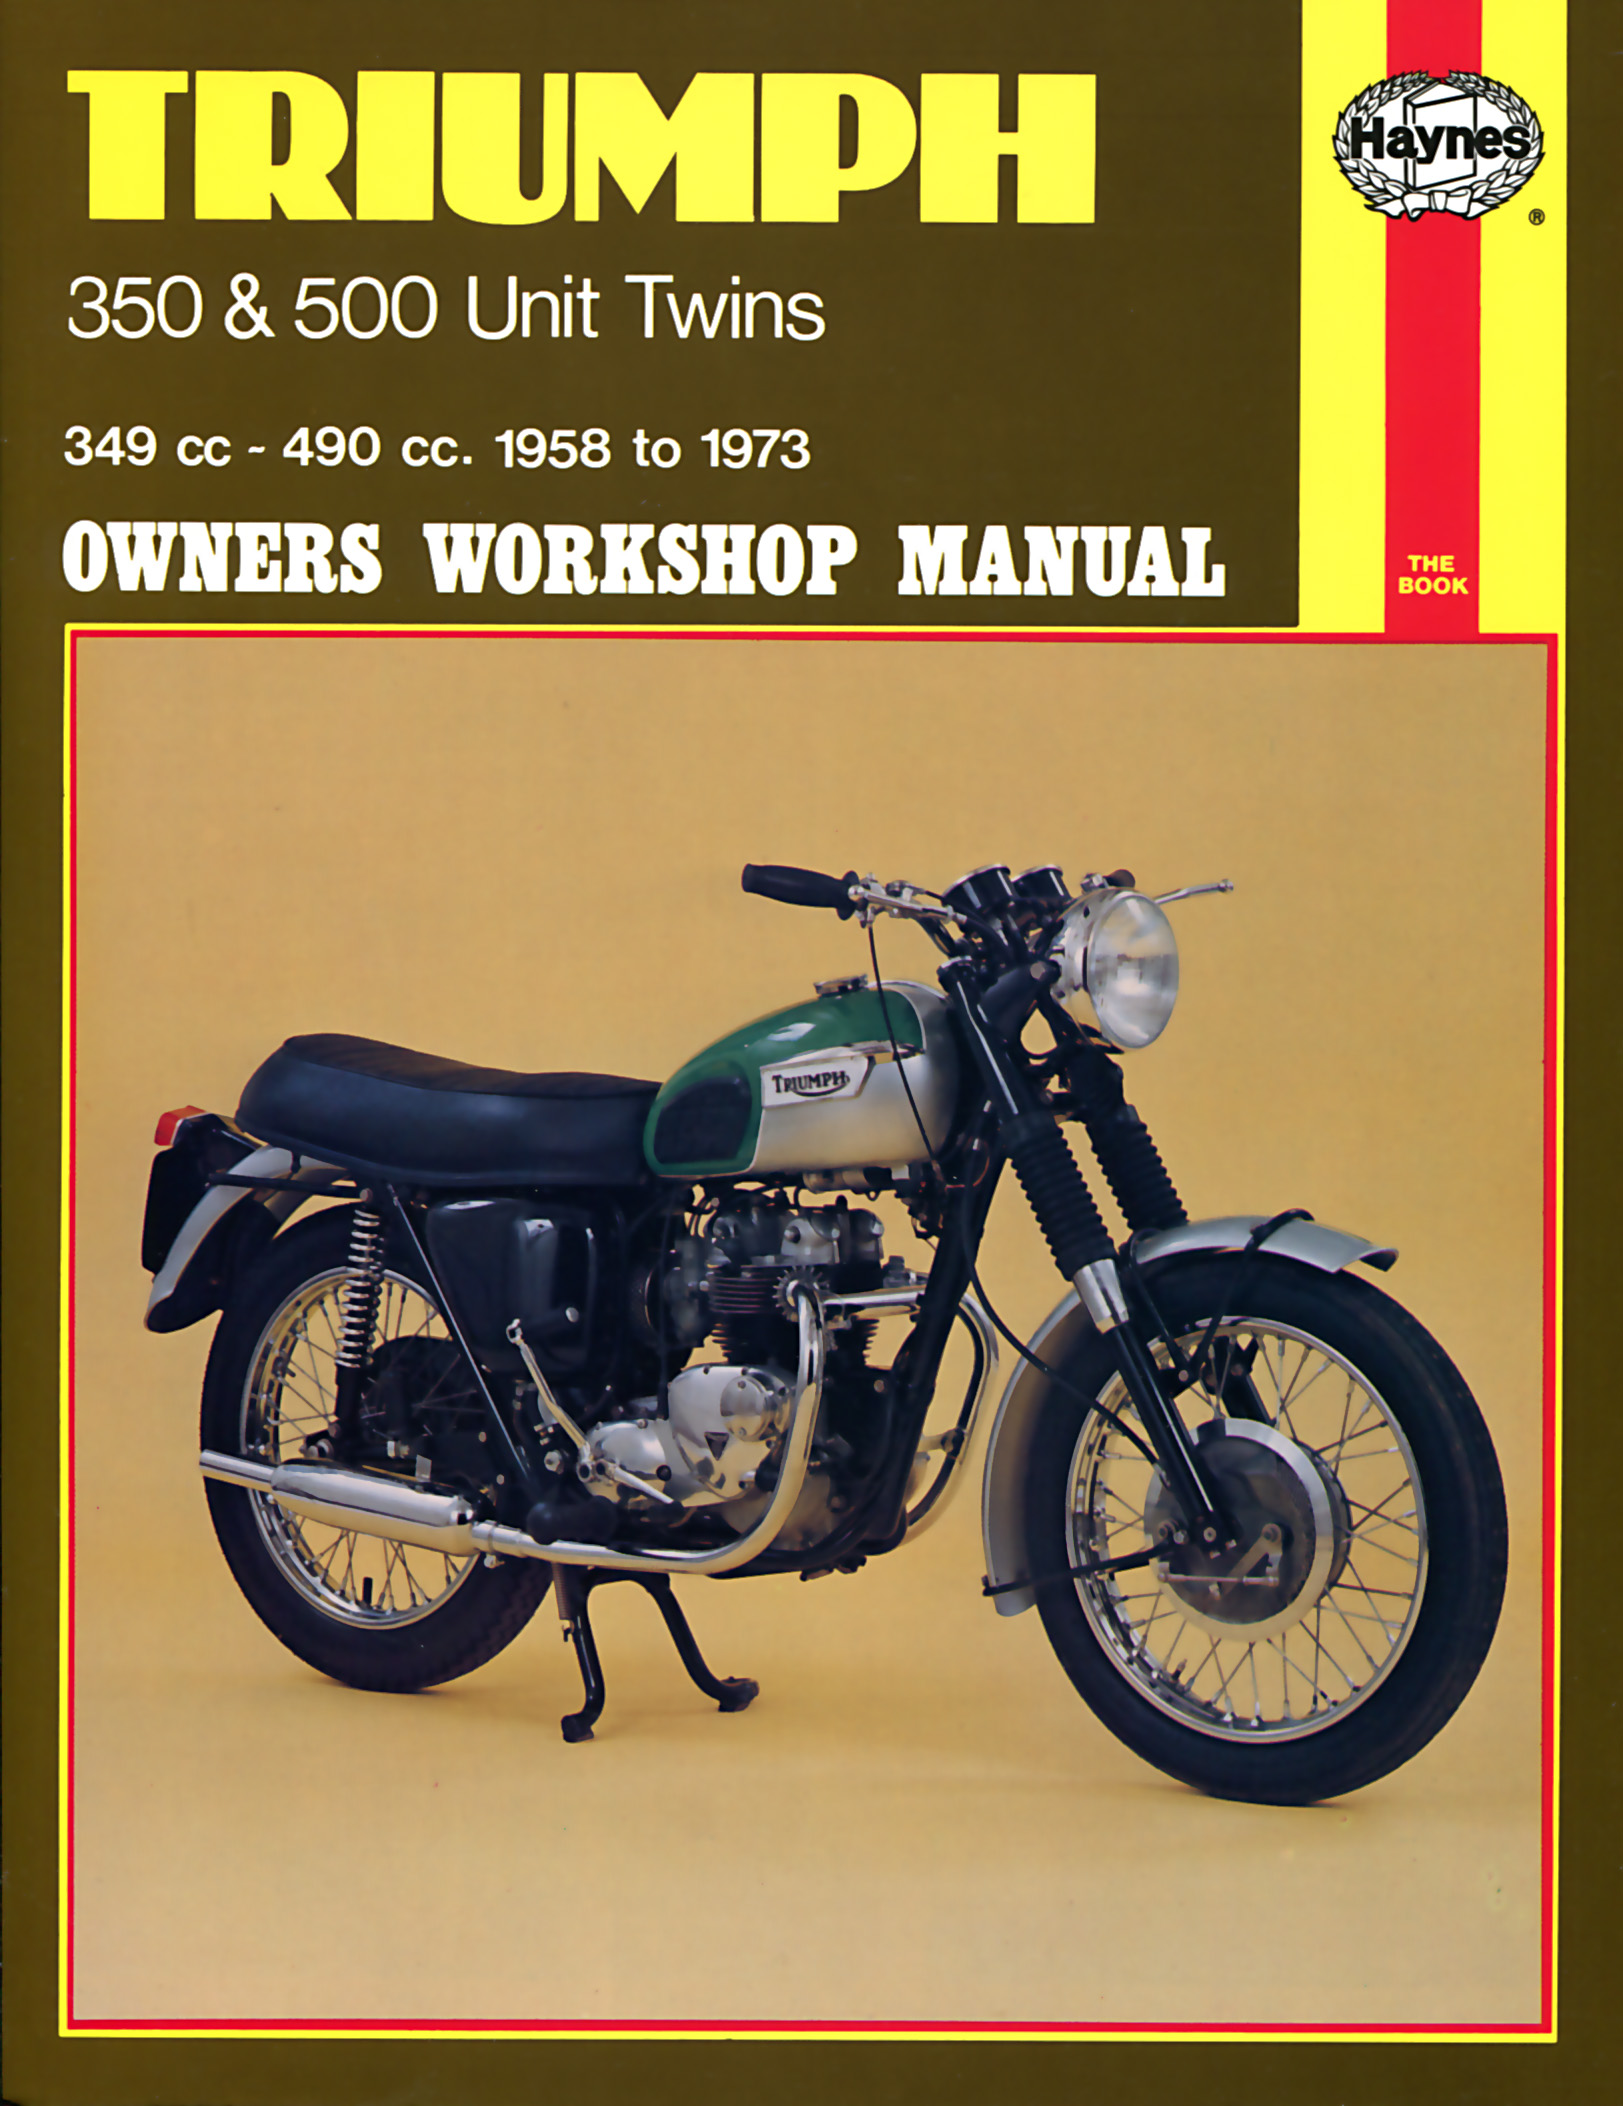 Triumph 350 and 500 Unit Twins 1958 - 1973 Owners Workshop Manua